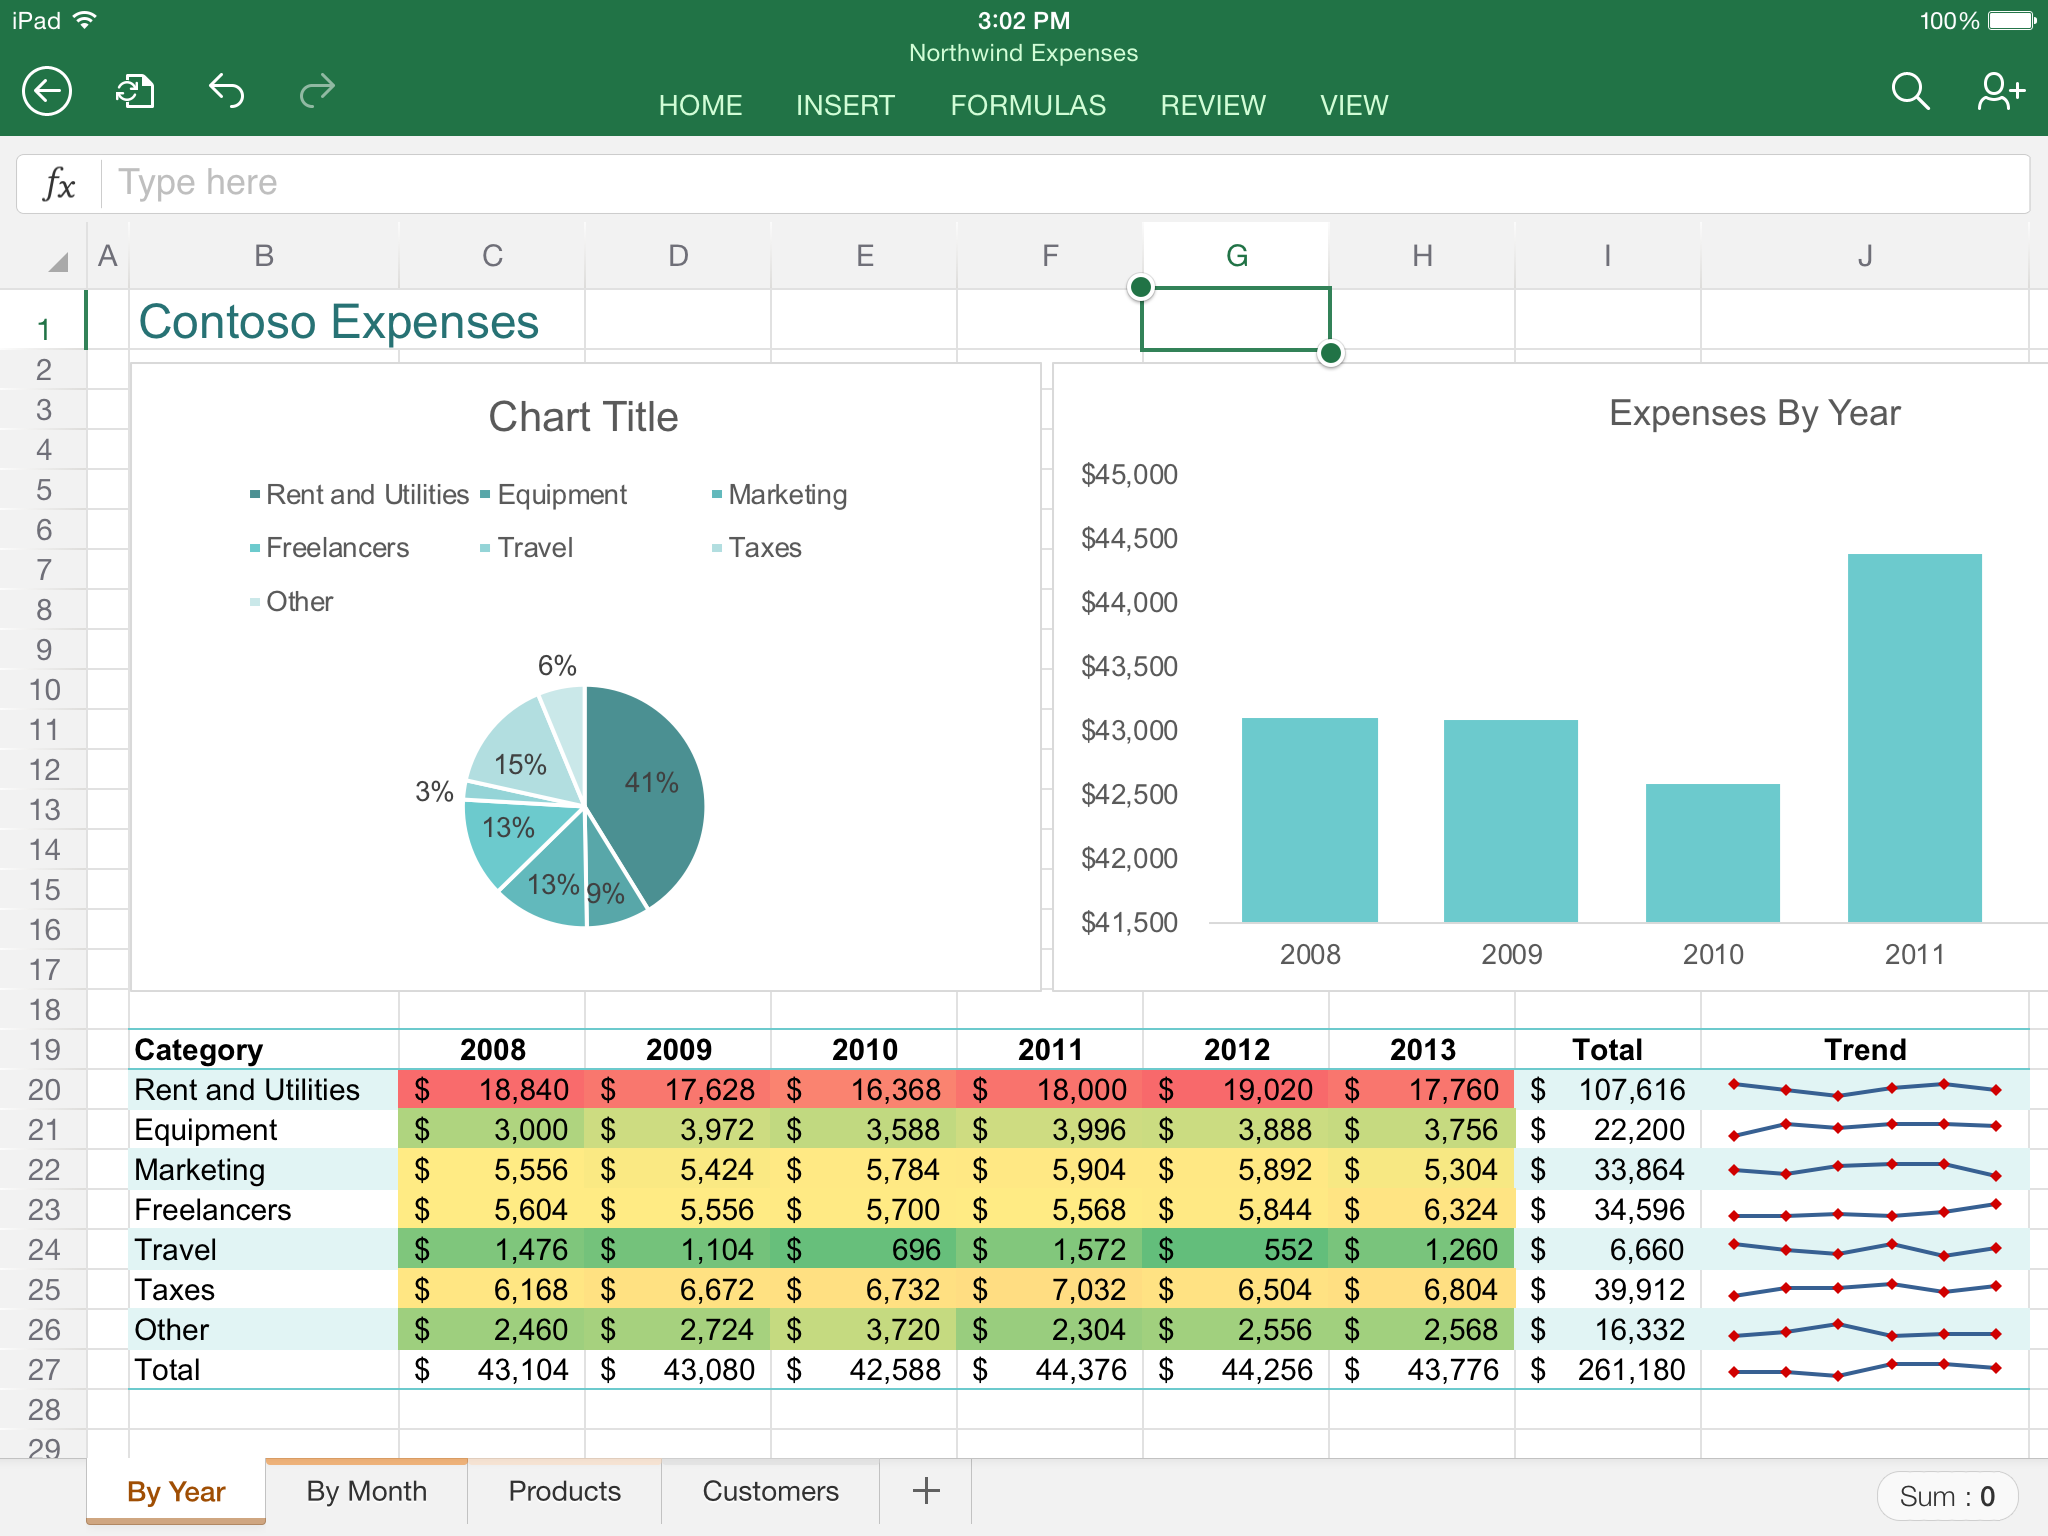 Ediblewildsus  Surprising App Highlight Excel  Mobile Digital Now With Fair Excel In Action With Adorable Creating Charts In Excel  Also Excel Long Range Fishing In Addition Insert Footer In Excel And Excel Regression Formula As Well As Excel Vba Sendkeys Additionally Change Case In Excel  From Youstonybrookedu With Ediblewildsus  Fair App Highlight Excel  Mobile Digital Now With Adorable Excel In Action And Surprising Creating Charts In Excel  Also Excel Long Range Fishing In Addition Insert Footer In Excel From Youstonybrookedu